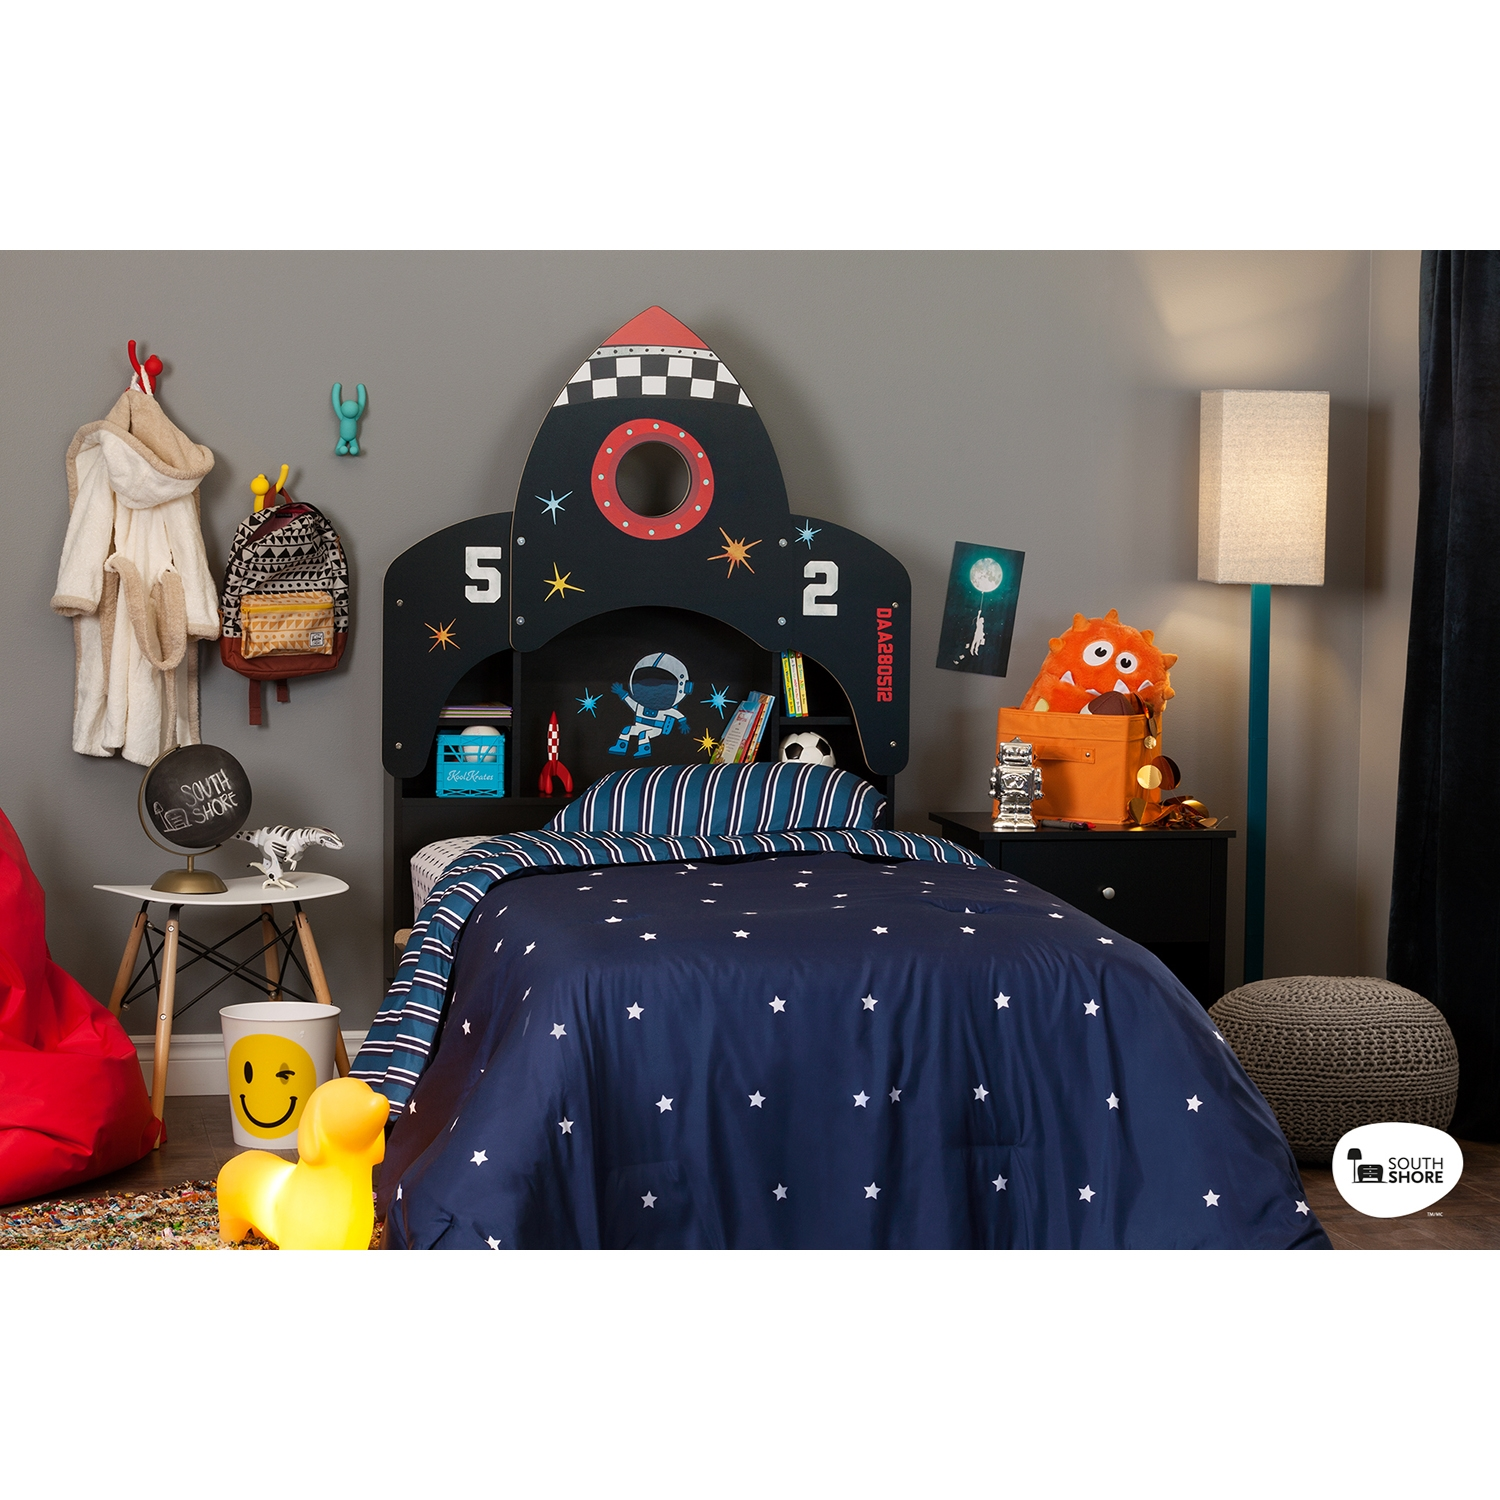 Vito Twin Bookcase Headboard with Decals - Space Rocket Theme, Pure Black - SS-10101